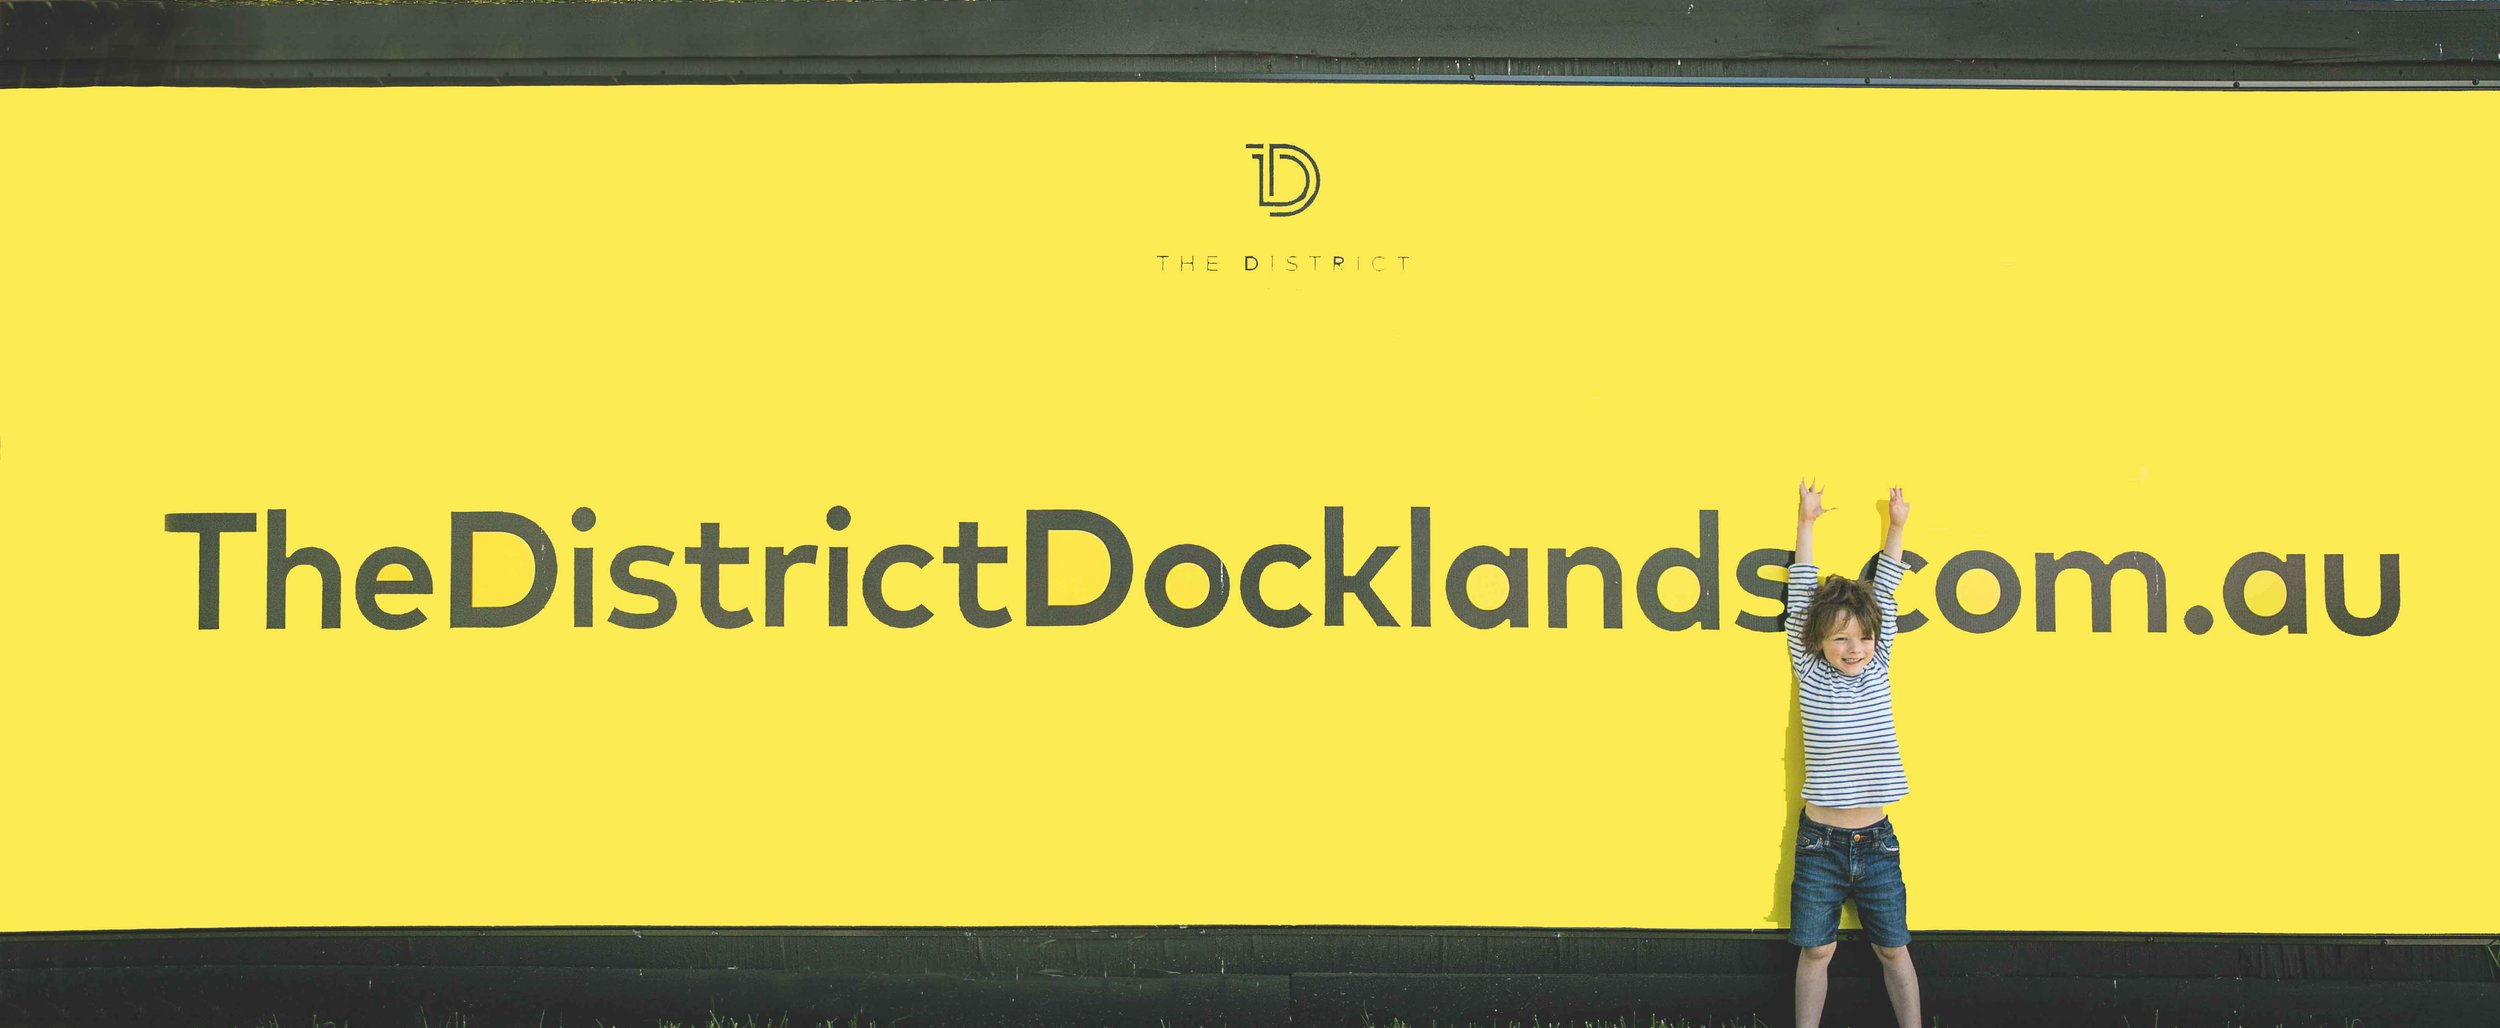 the district dock ppp.jpg